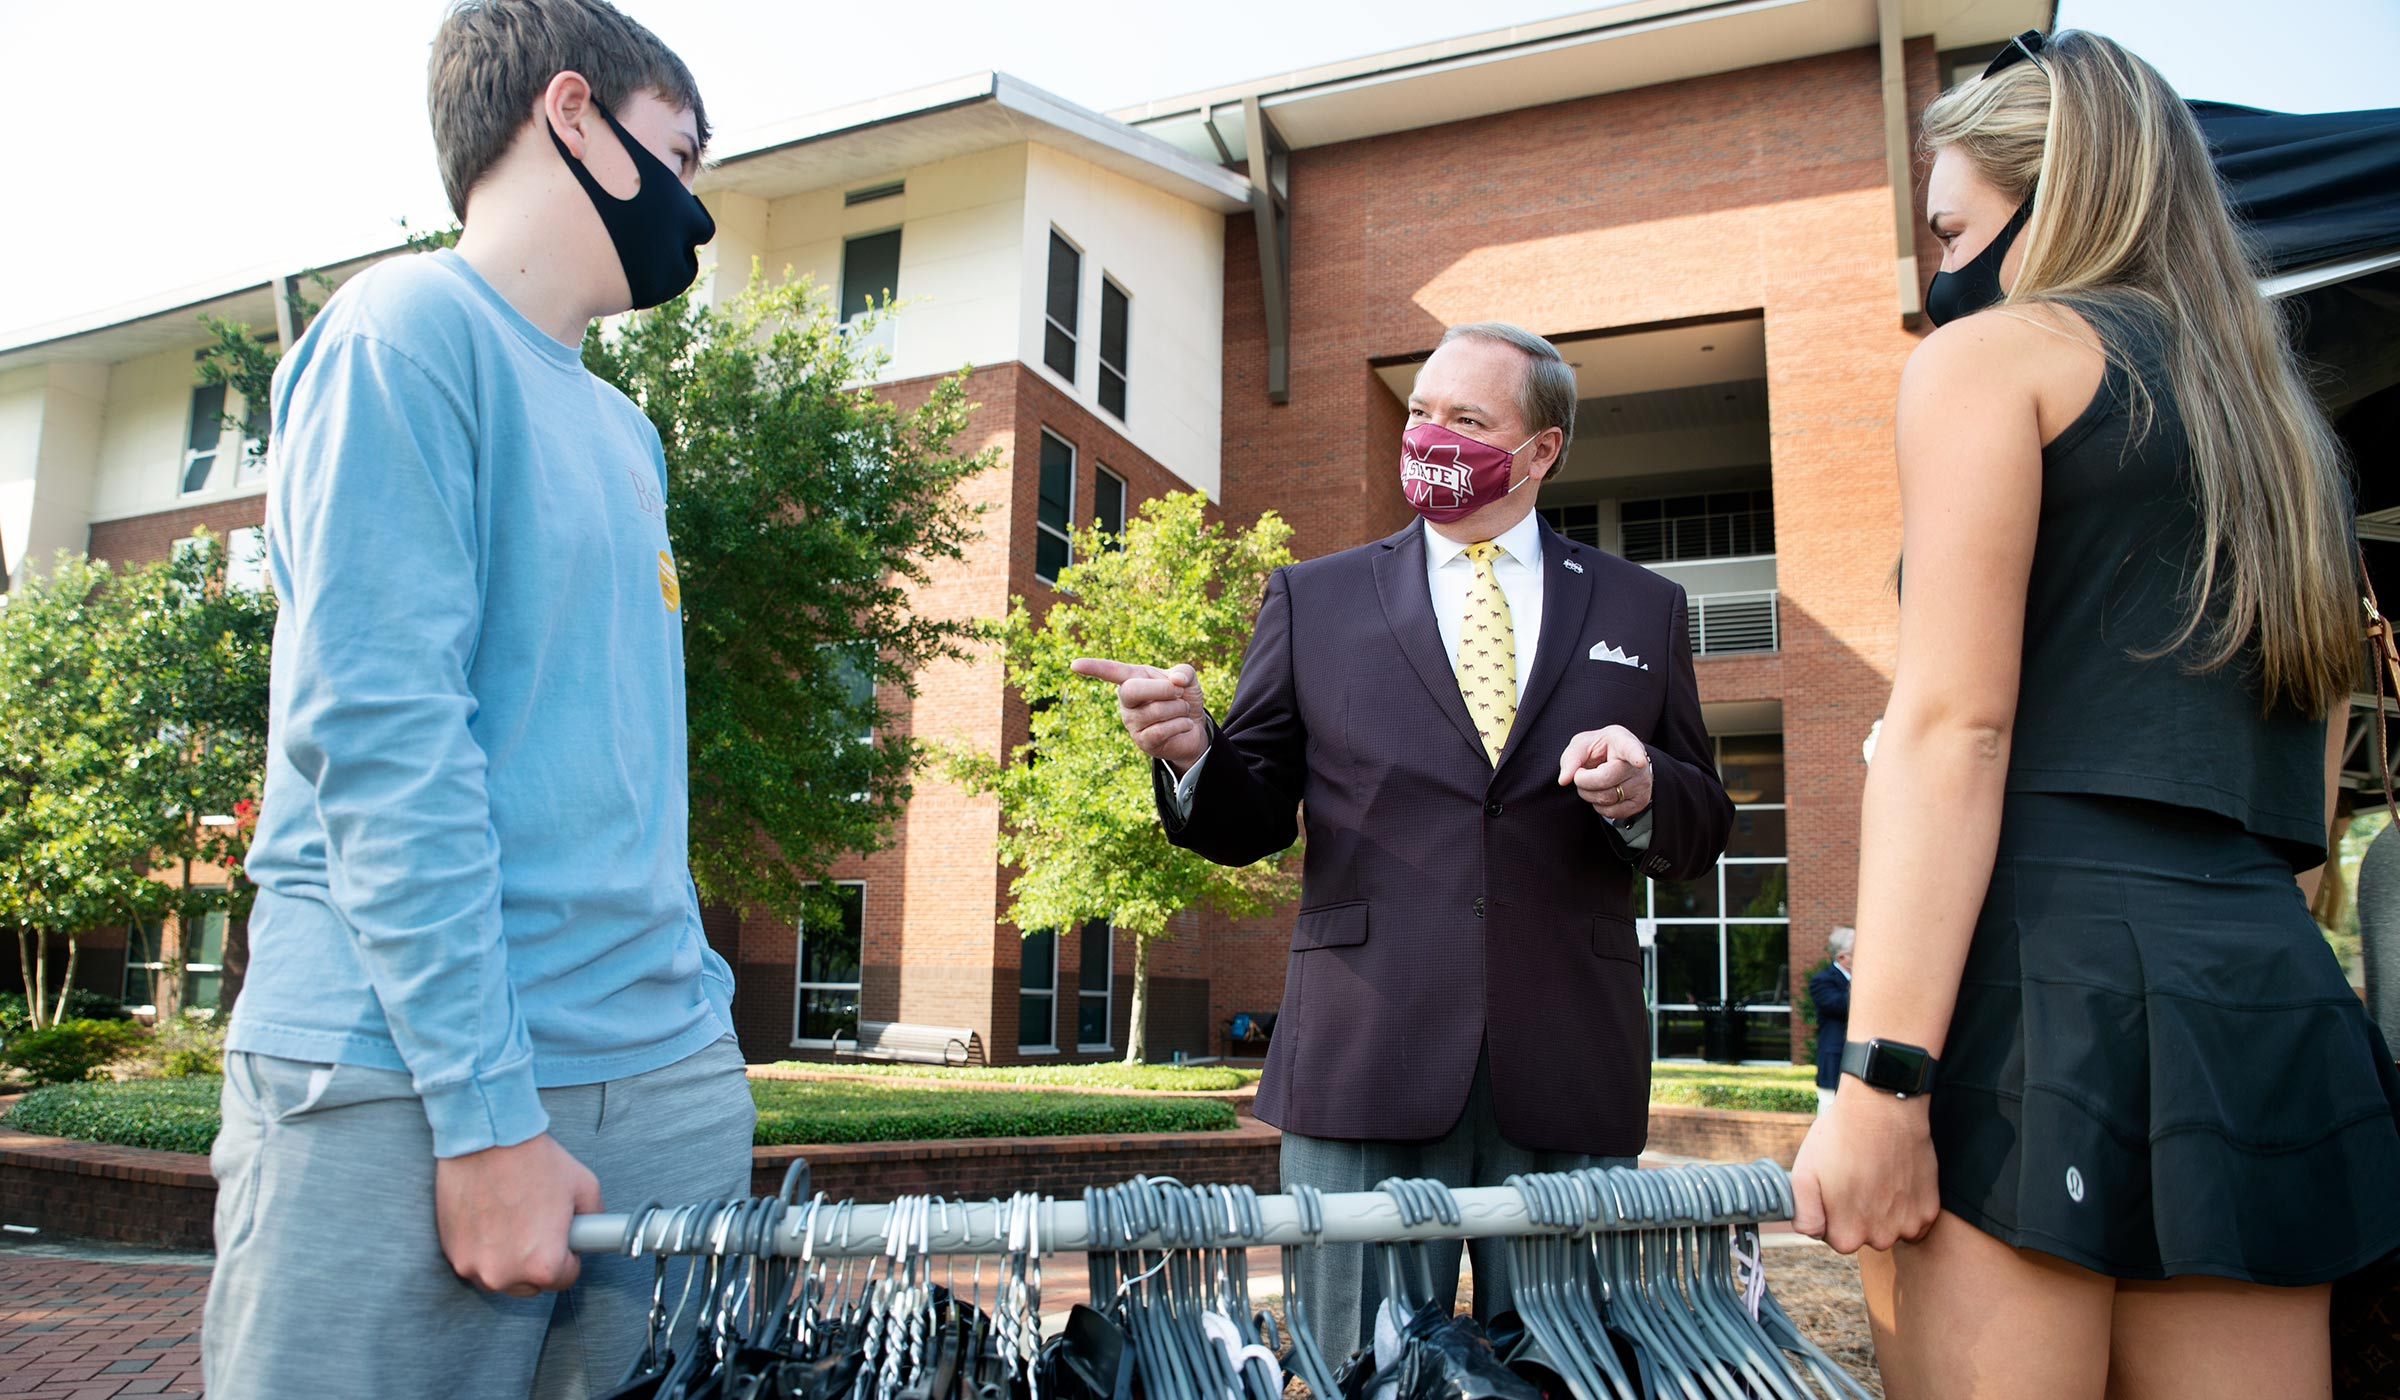 With Oak Hall behind them on Move-in Day, President Keenum speaks to a pair holding a rod filled with hanging clothes.